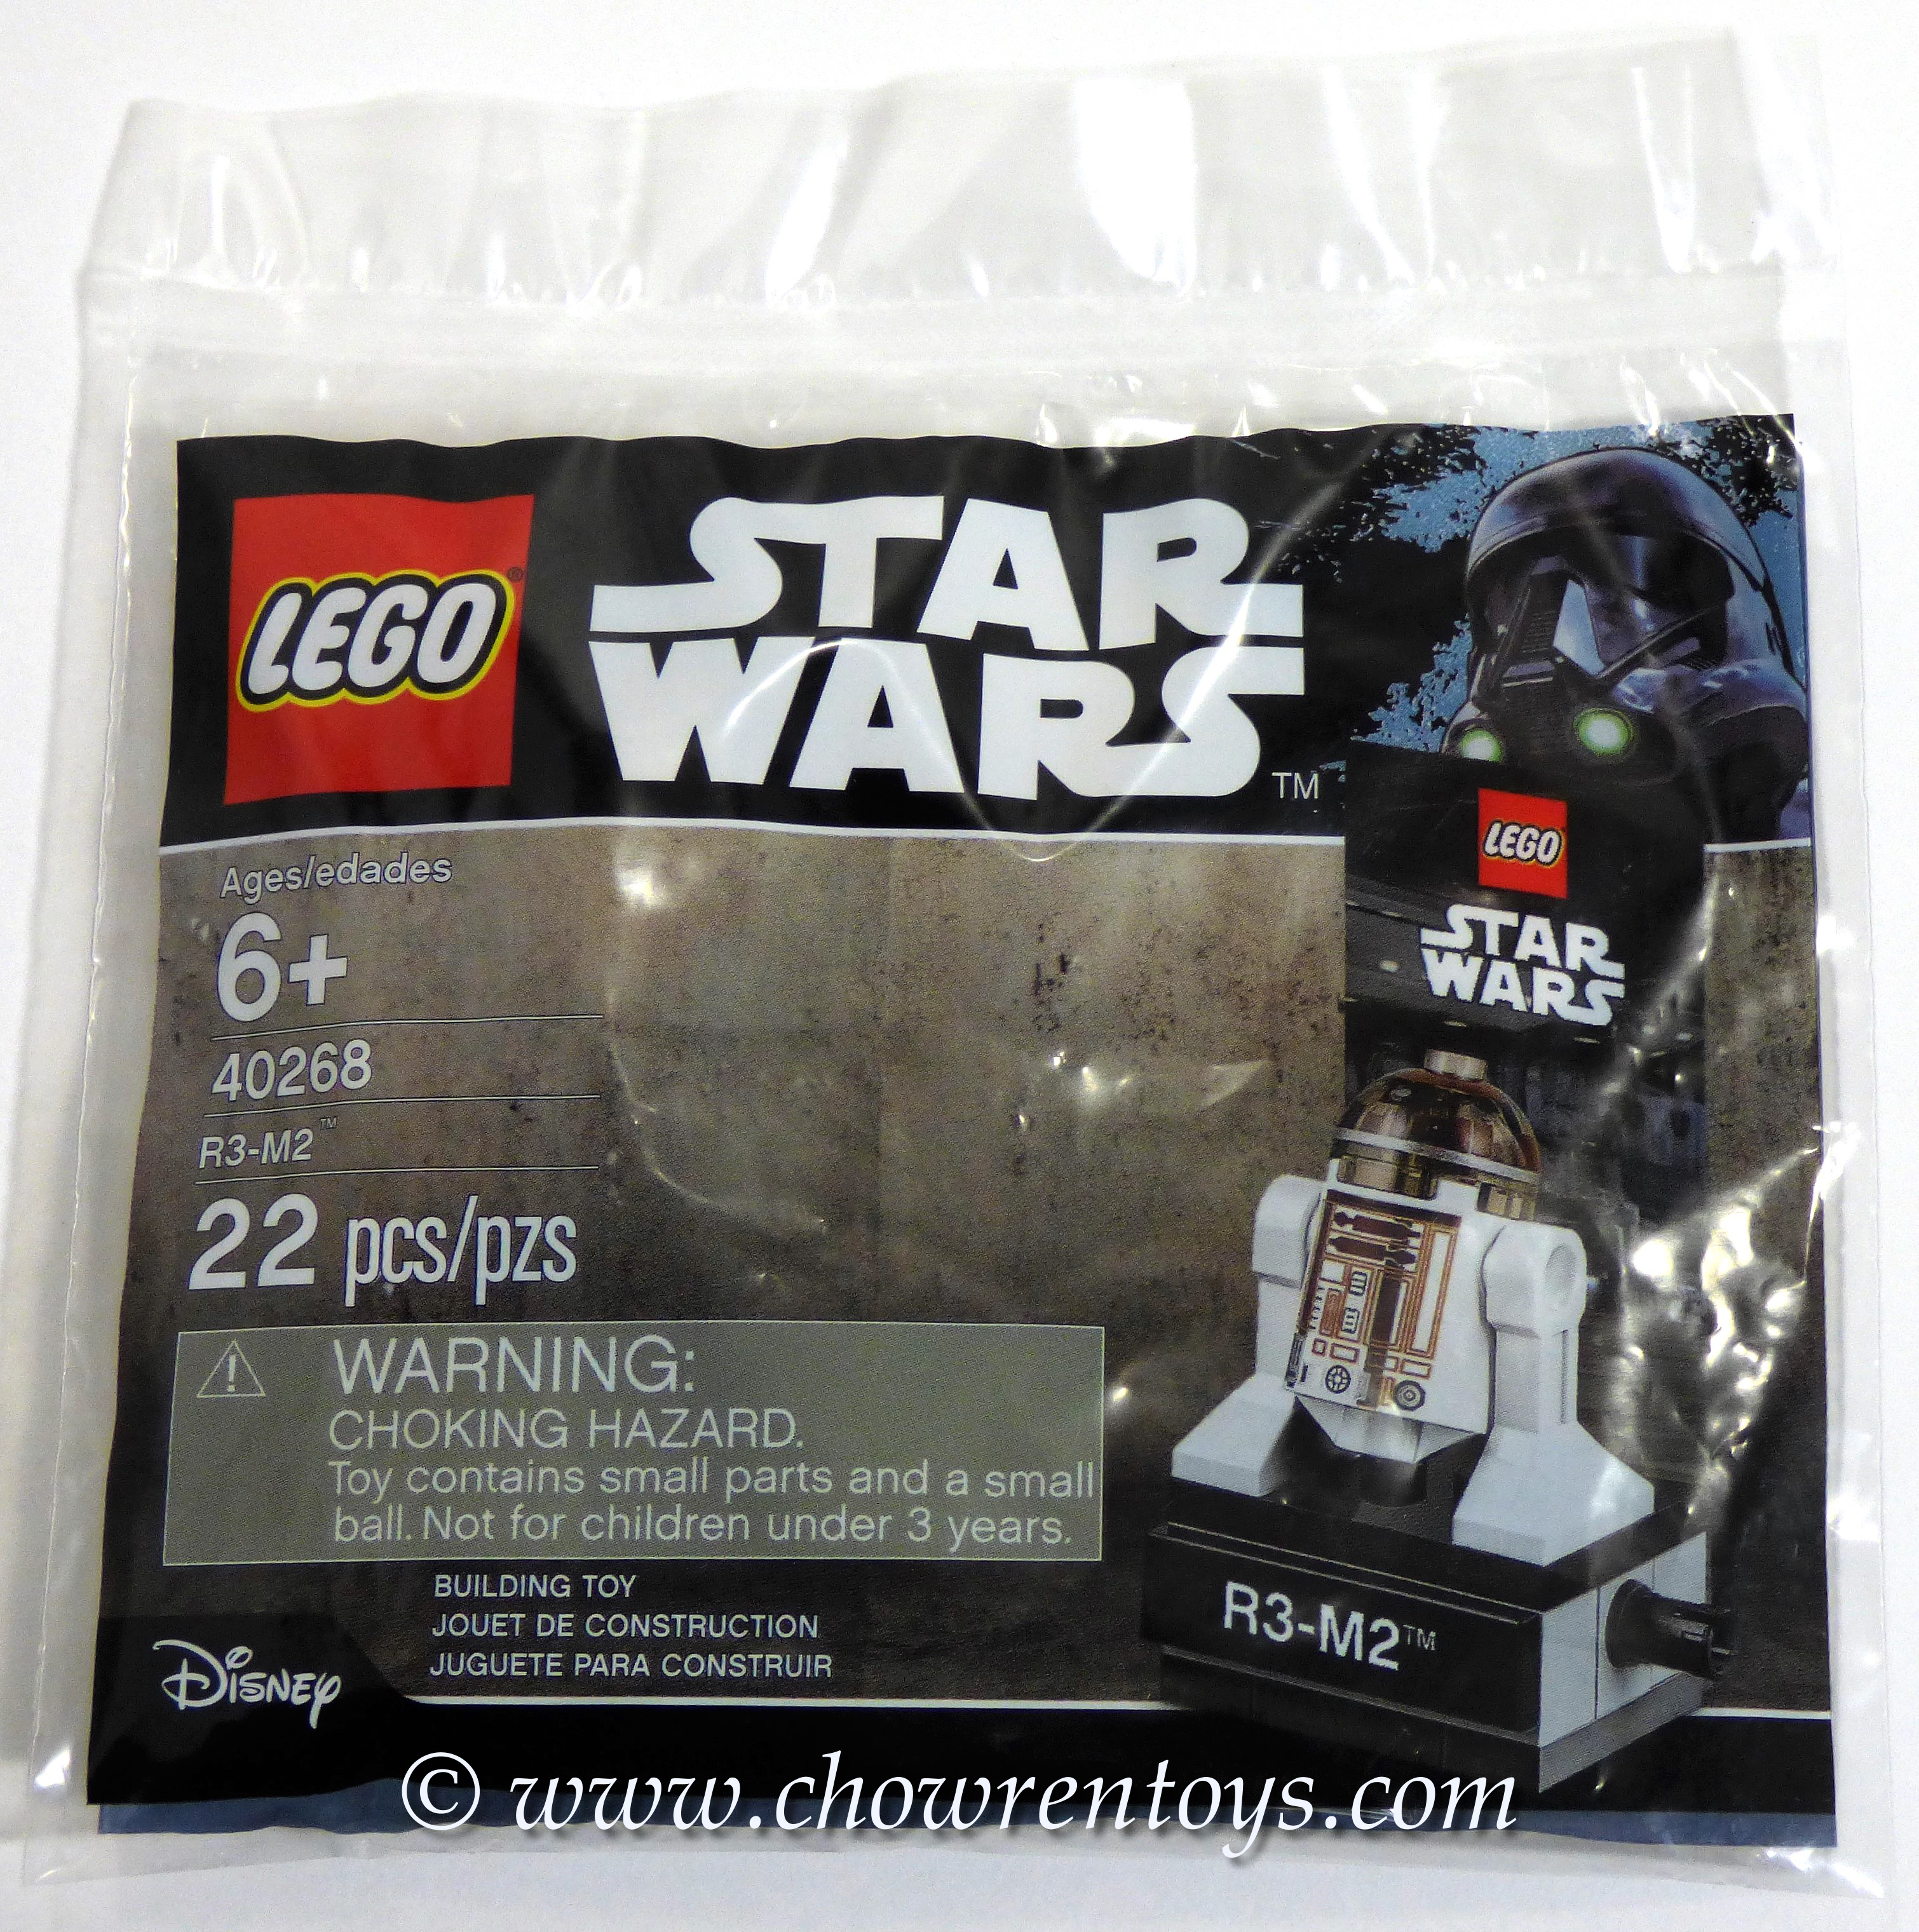 LEGO Star Wars Sets: 40268 R3-M2 NEW